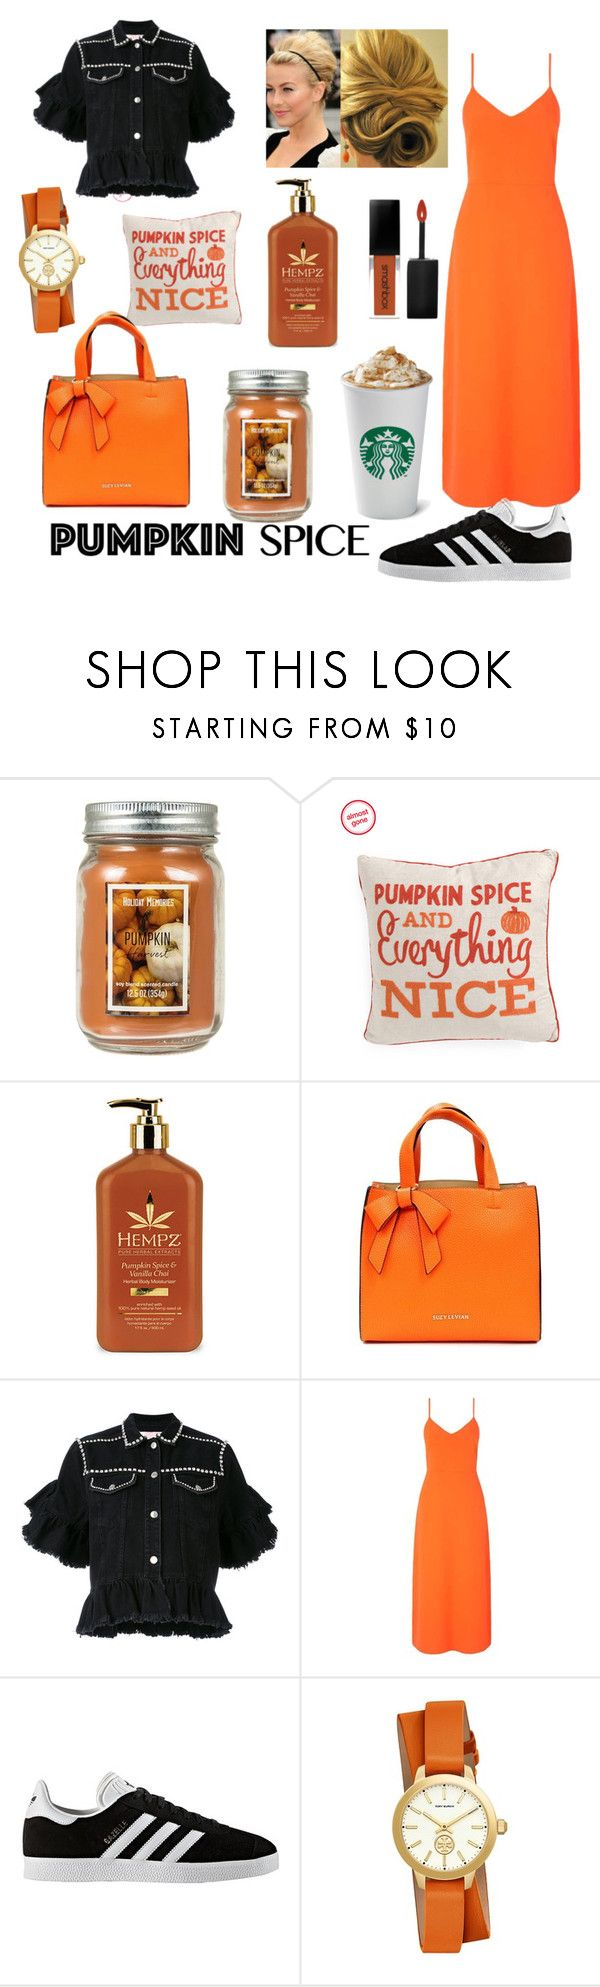 """pumpkin spice"" by ana-zigne ❤ liked on Polyvore featuring Holiday Memories, Suzy Levian, MSGM, Miss Selfridge, adidas and Tory Burch"